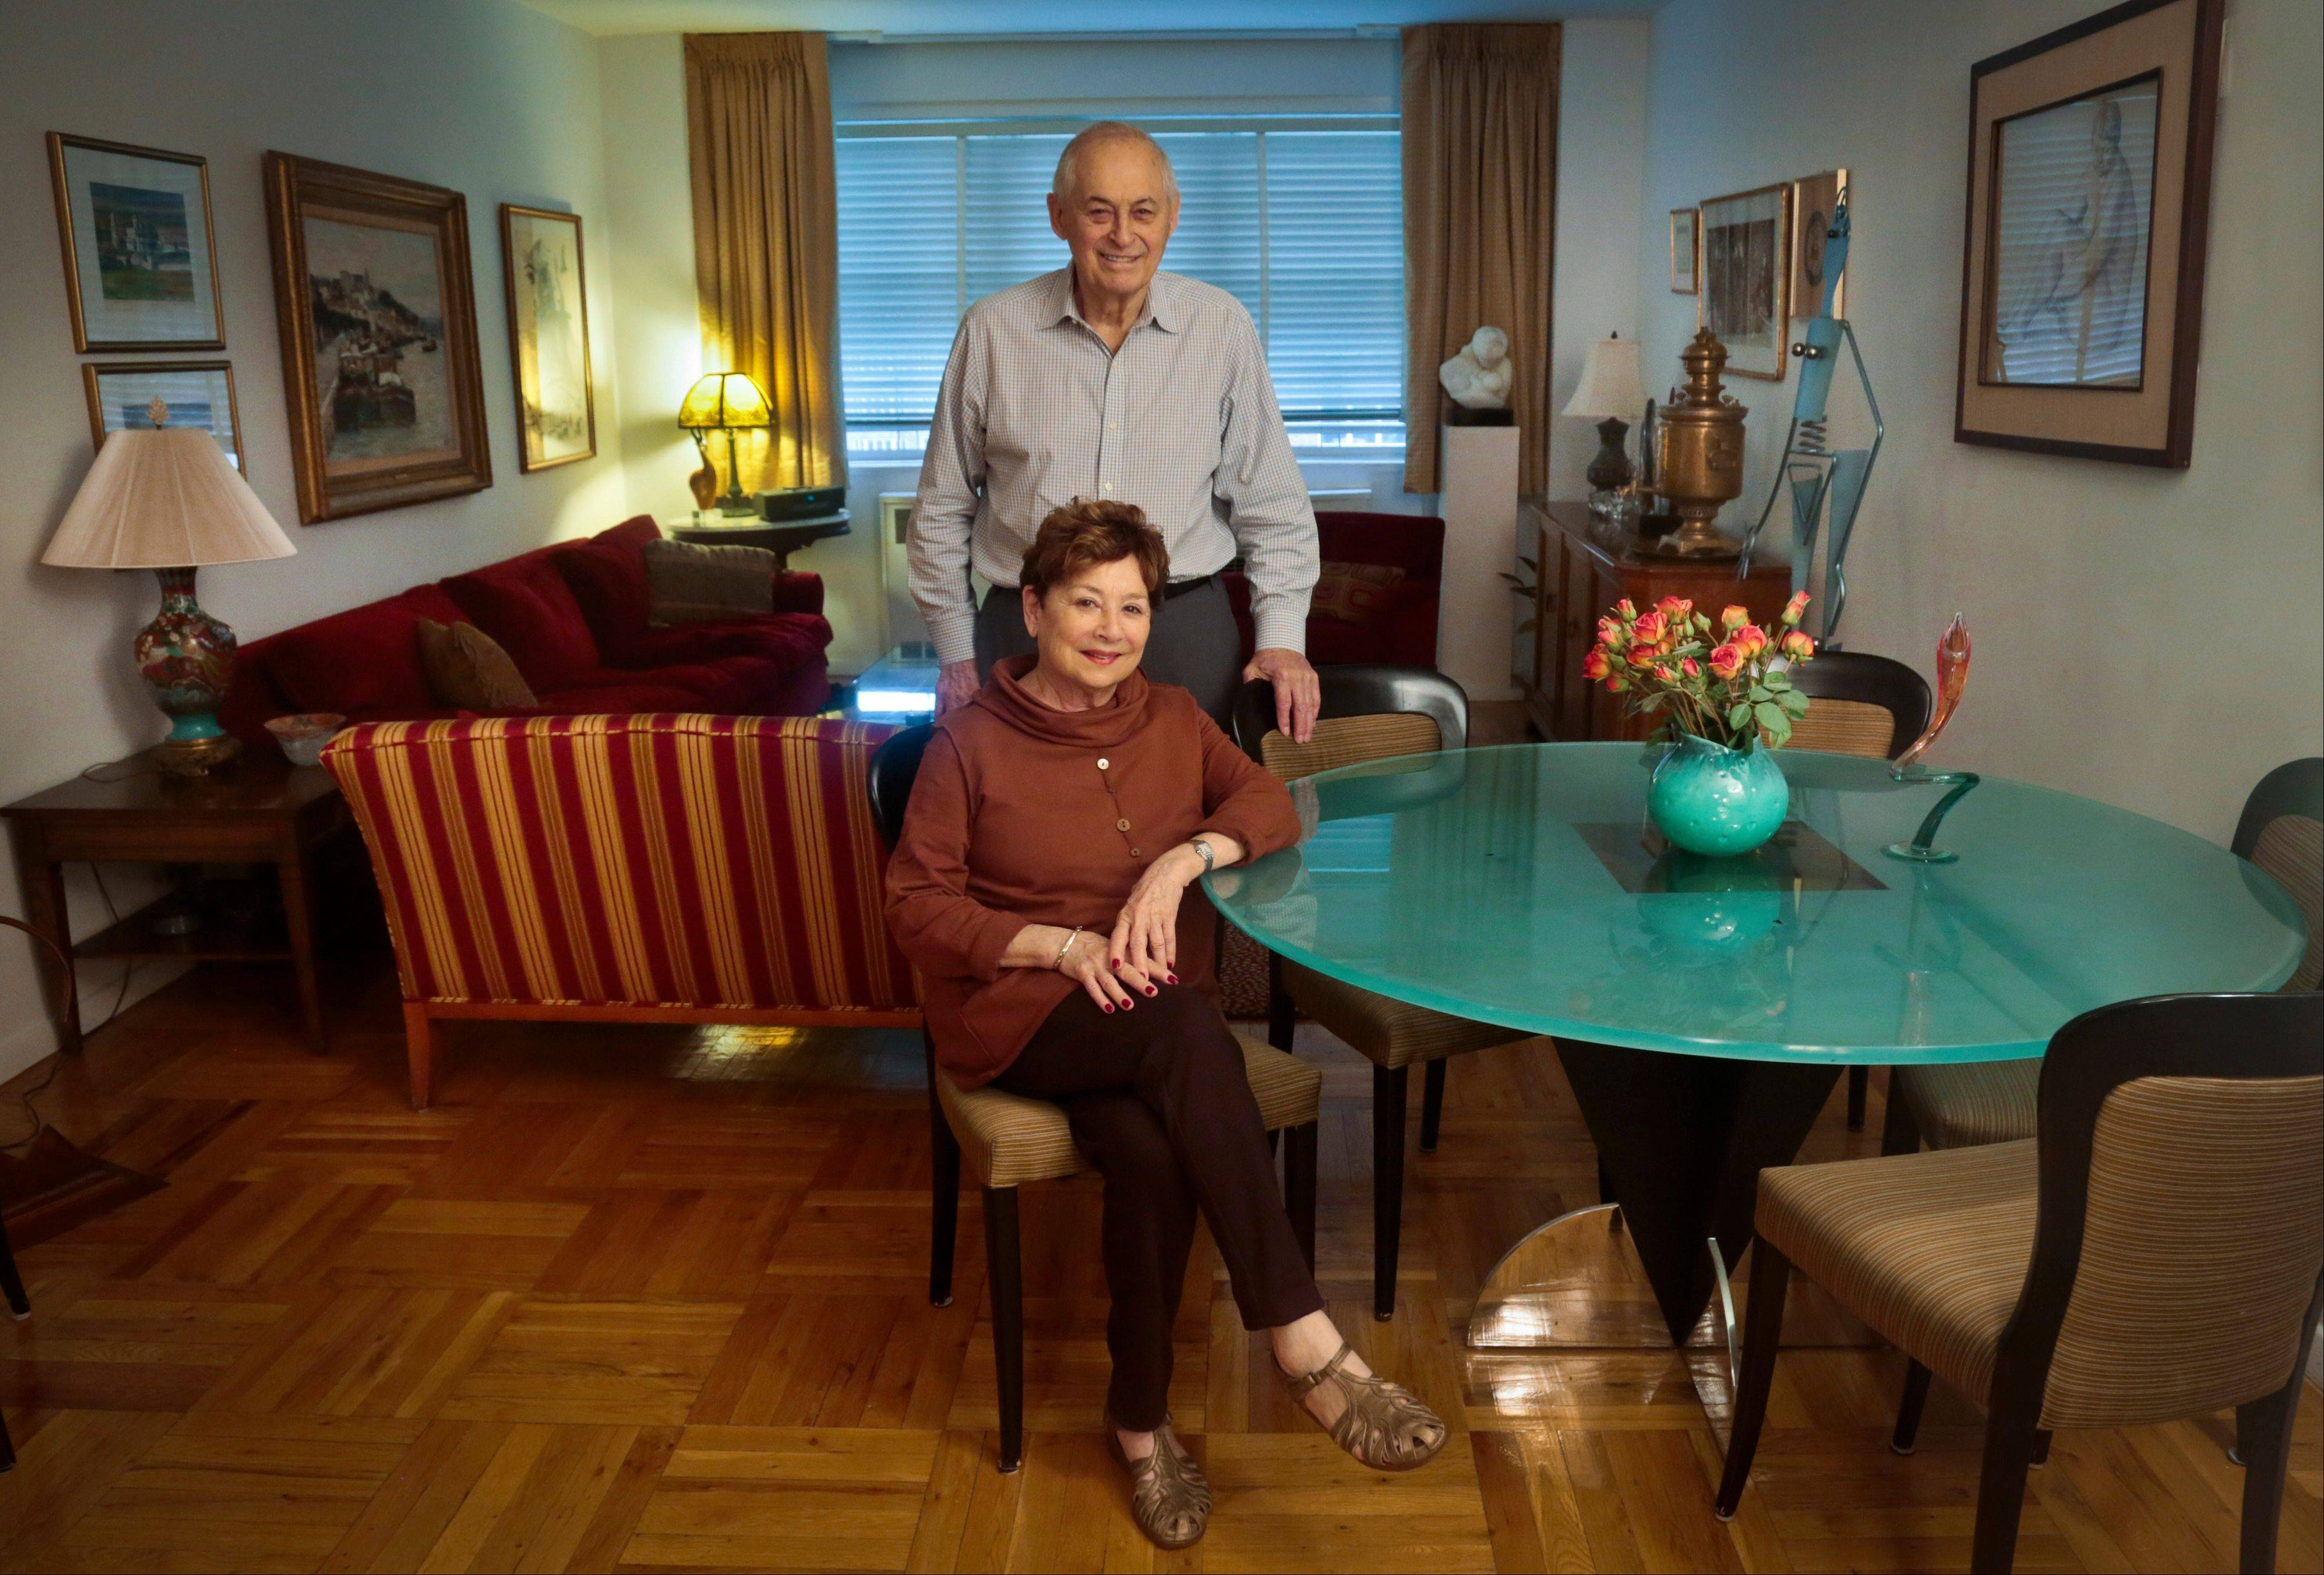 Victims of Bernie Madoff�s massive Ponzi scheme, Morton Chalek, 91, standing, a WWII vet, and his friend Fran Reiss, 79, a retired educator, pose in the apartment they share. With the fifth anniversary of Madoff�s fraud approaching, Chalek and Reiss are among a legion of former investors still struggling to move on after seeing their life savings go up in flames.